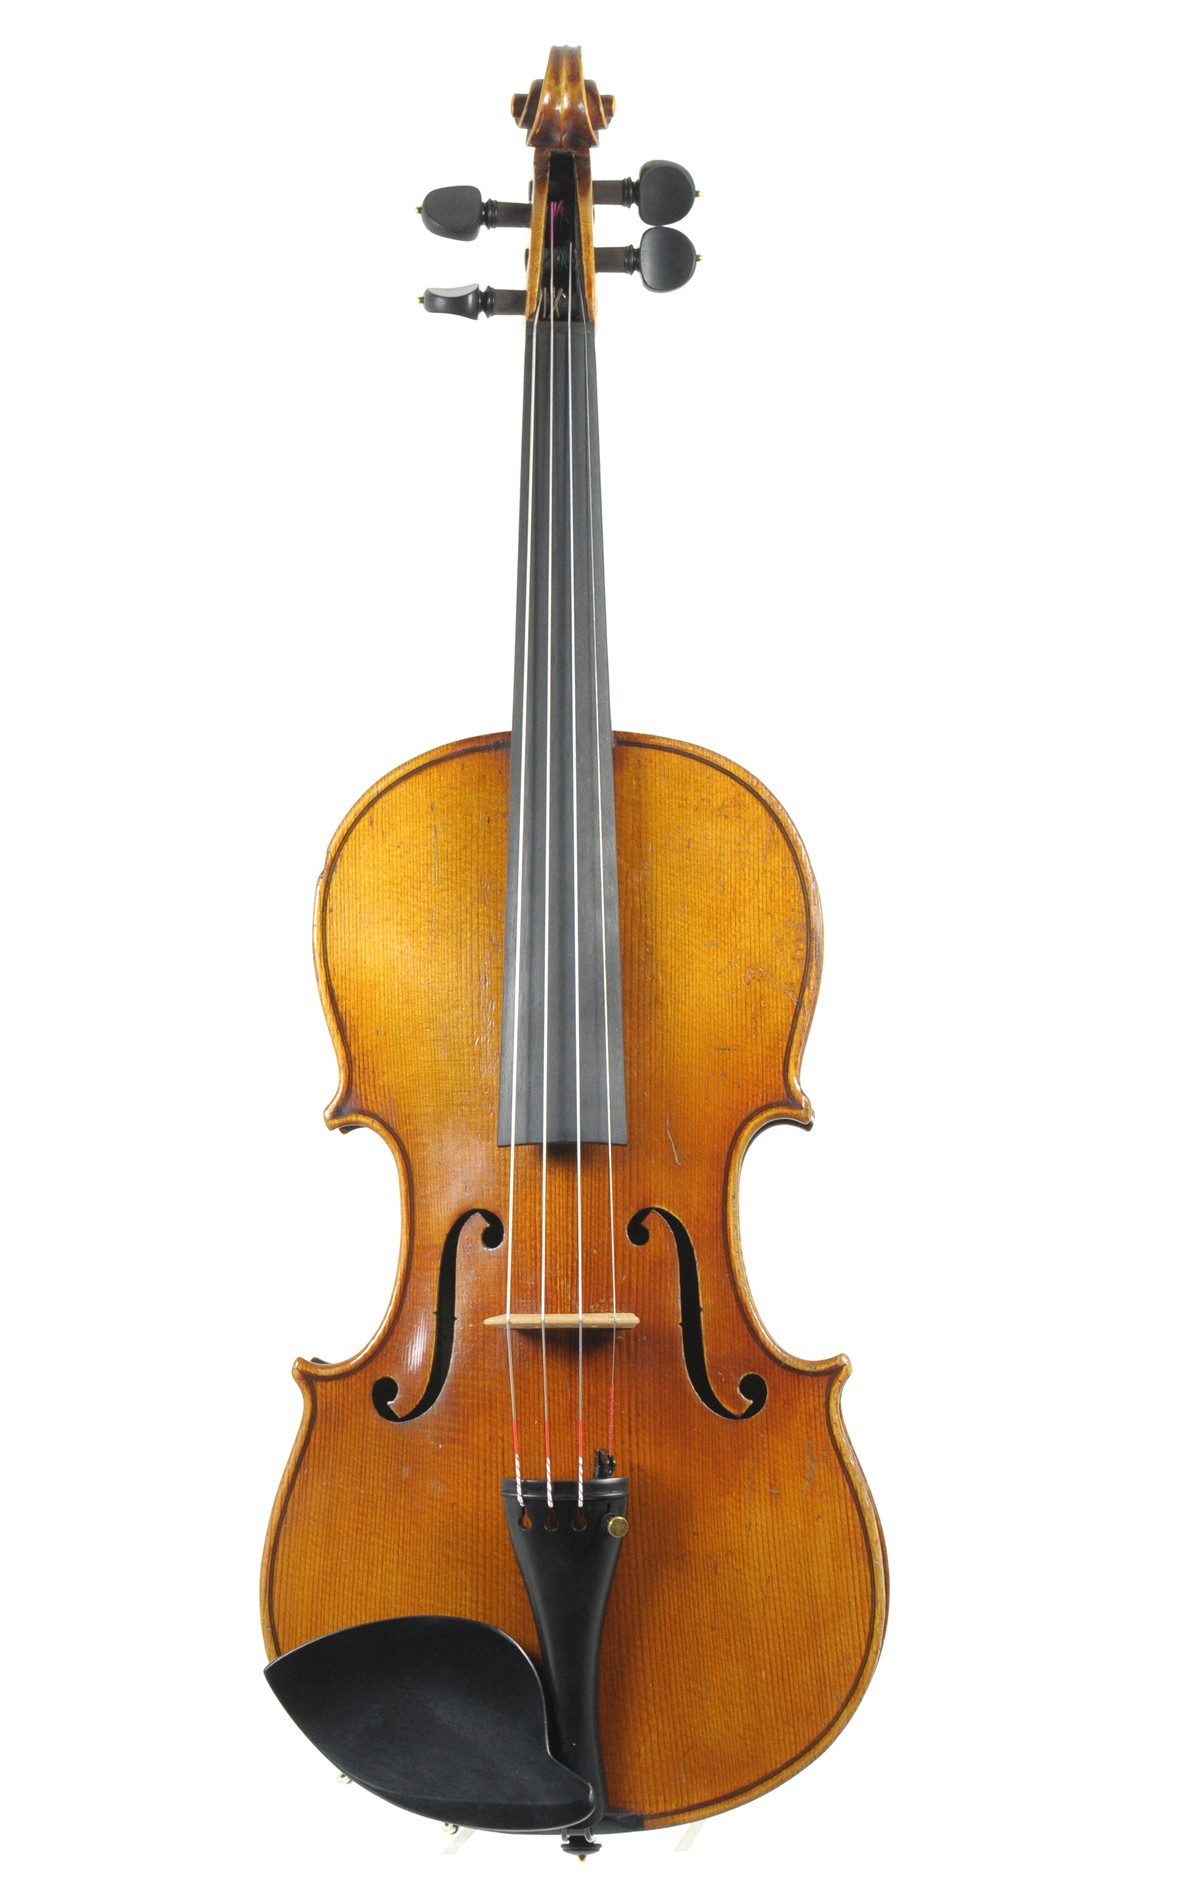 Violin with Ole Bull label, Saxony ca. 1900 - top view